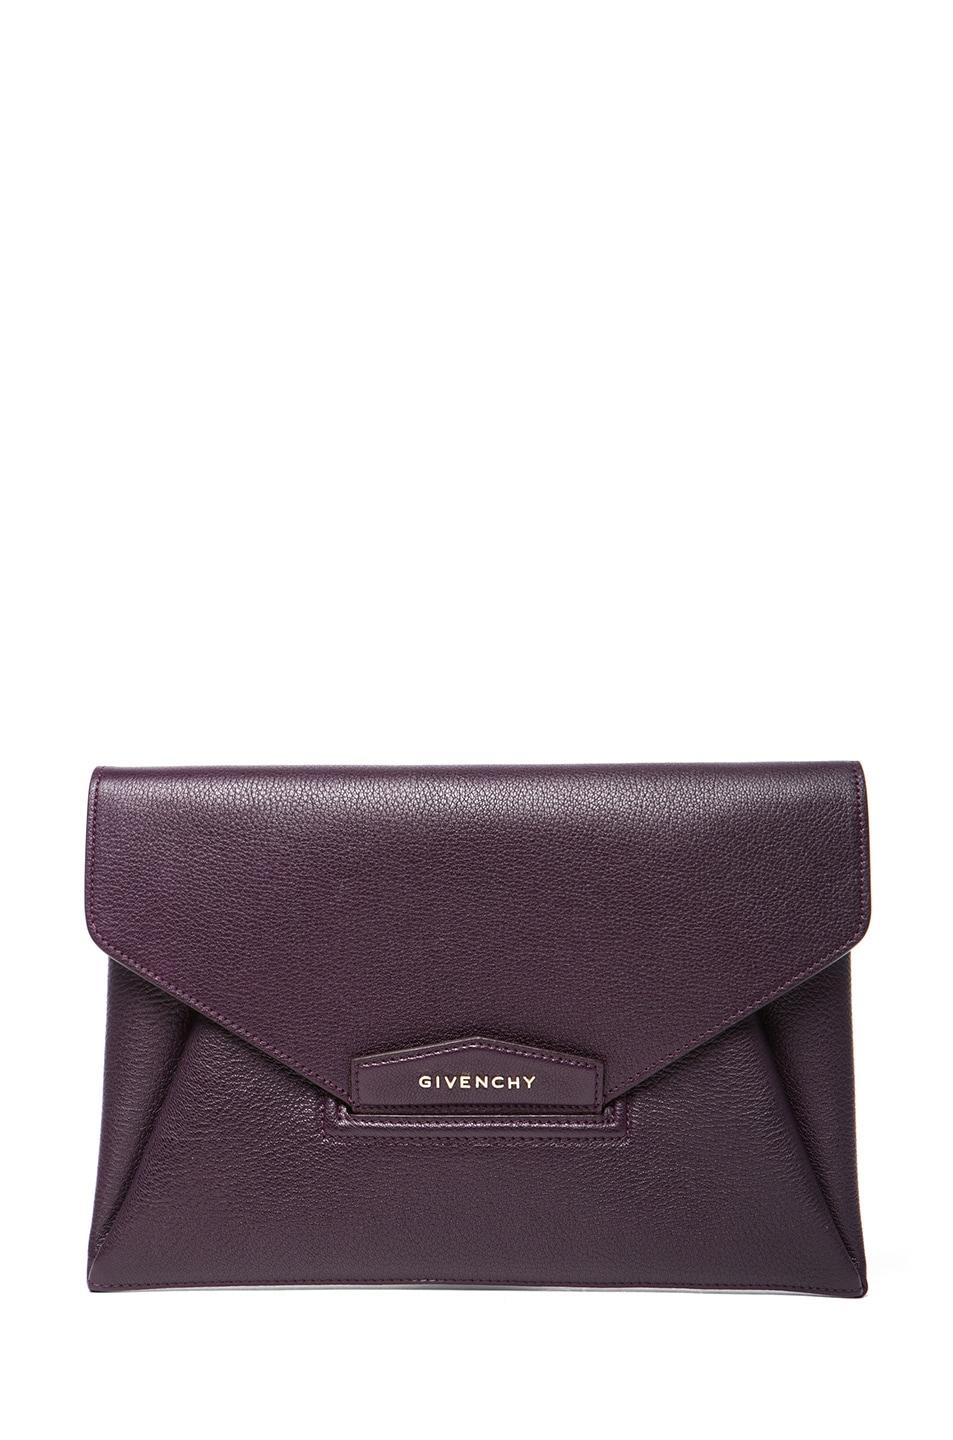 Image 1 of GIVENCHY Medium Antigona Clutch in Aubergine